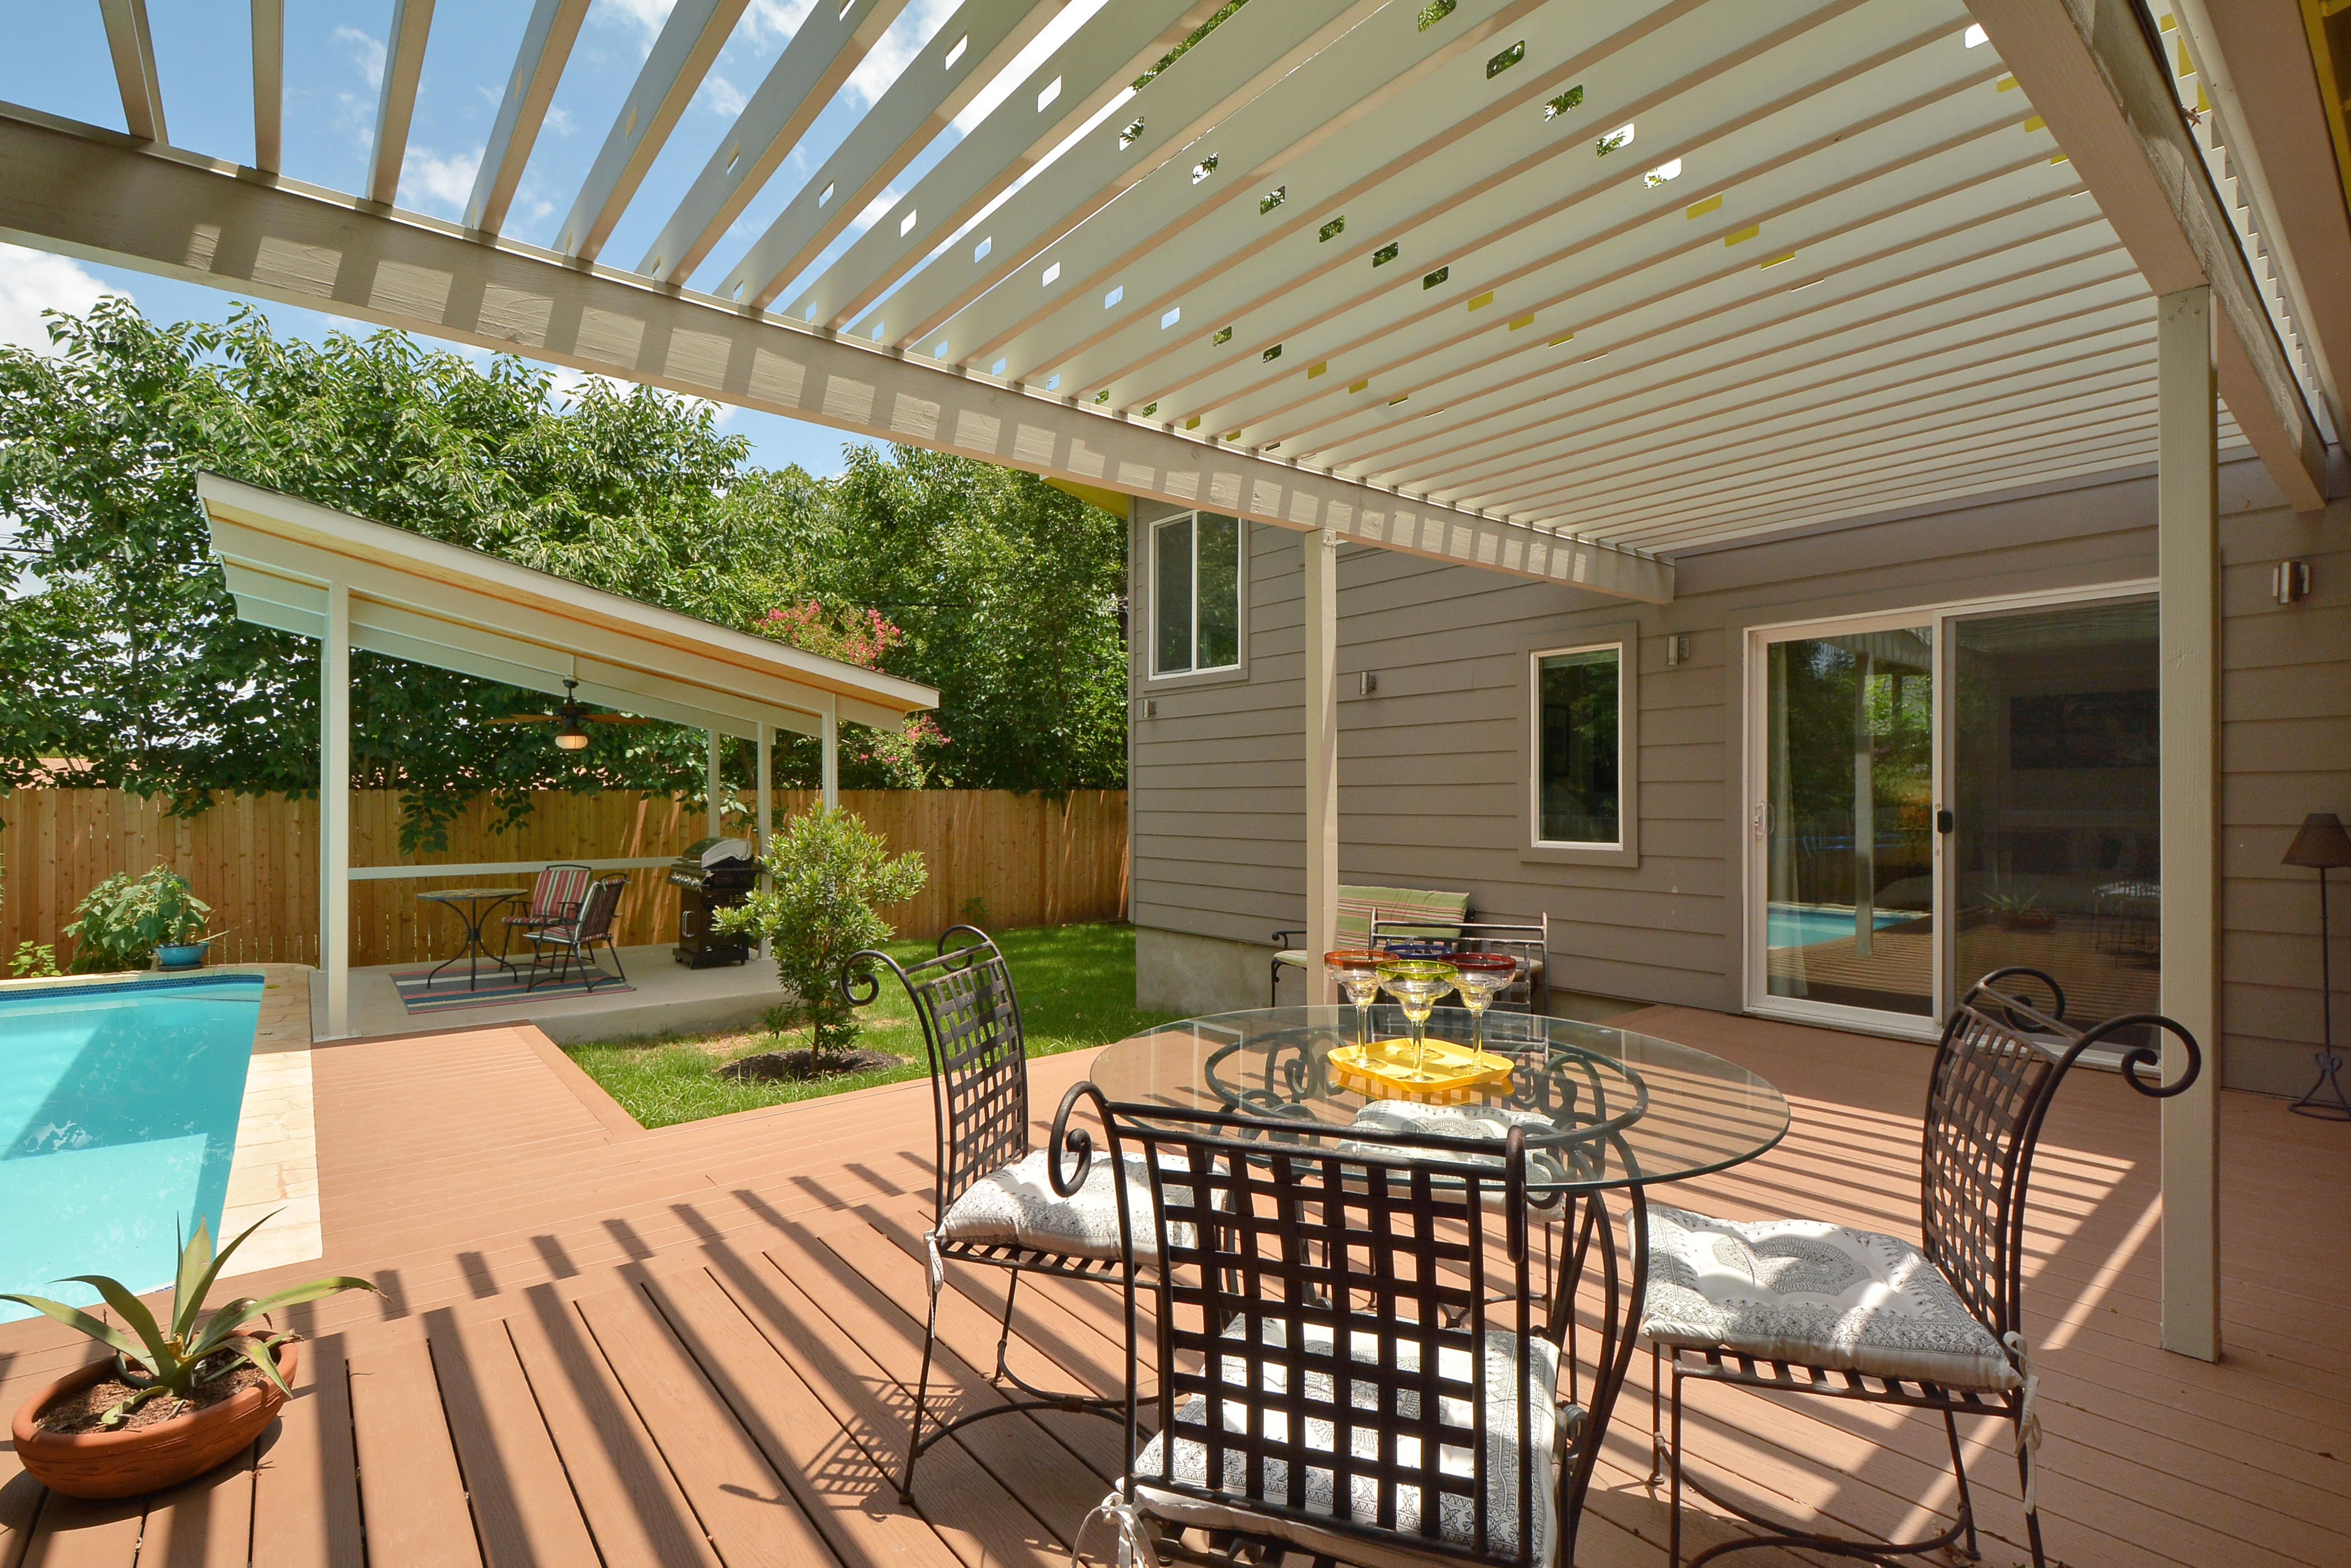 4BR3BA Butterfly House with Private Pool in Central Austin